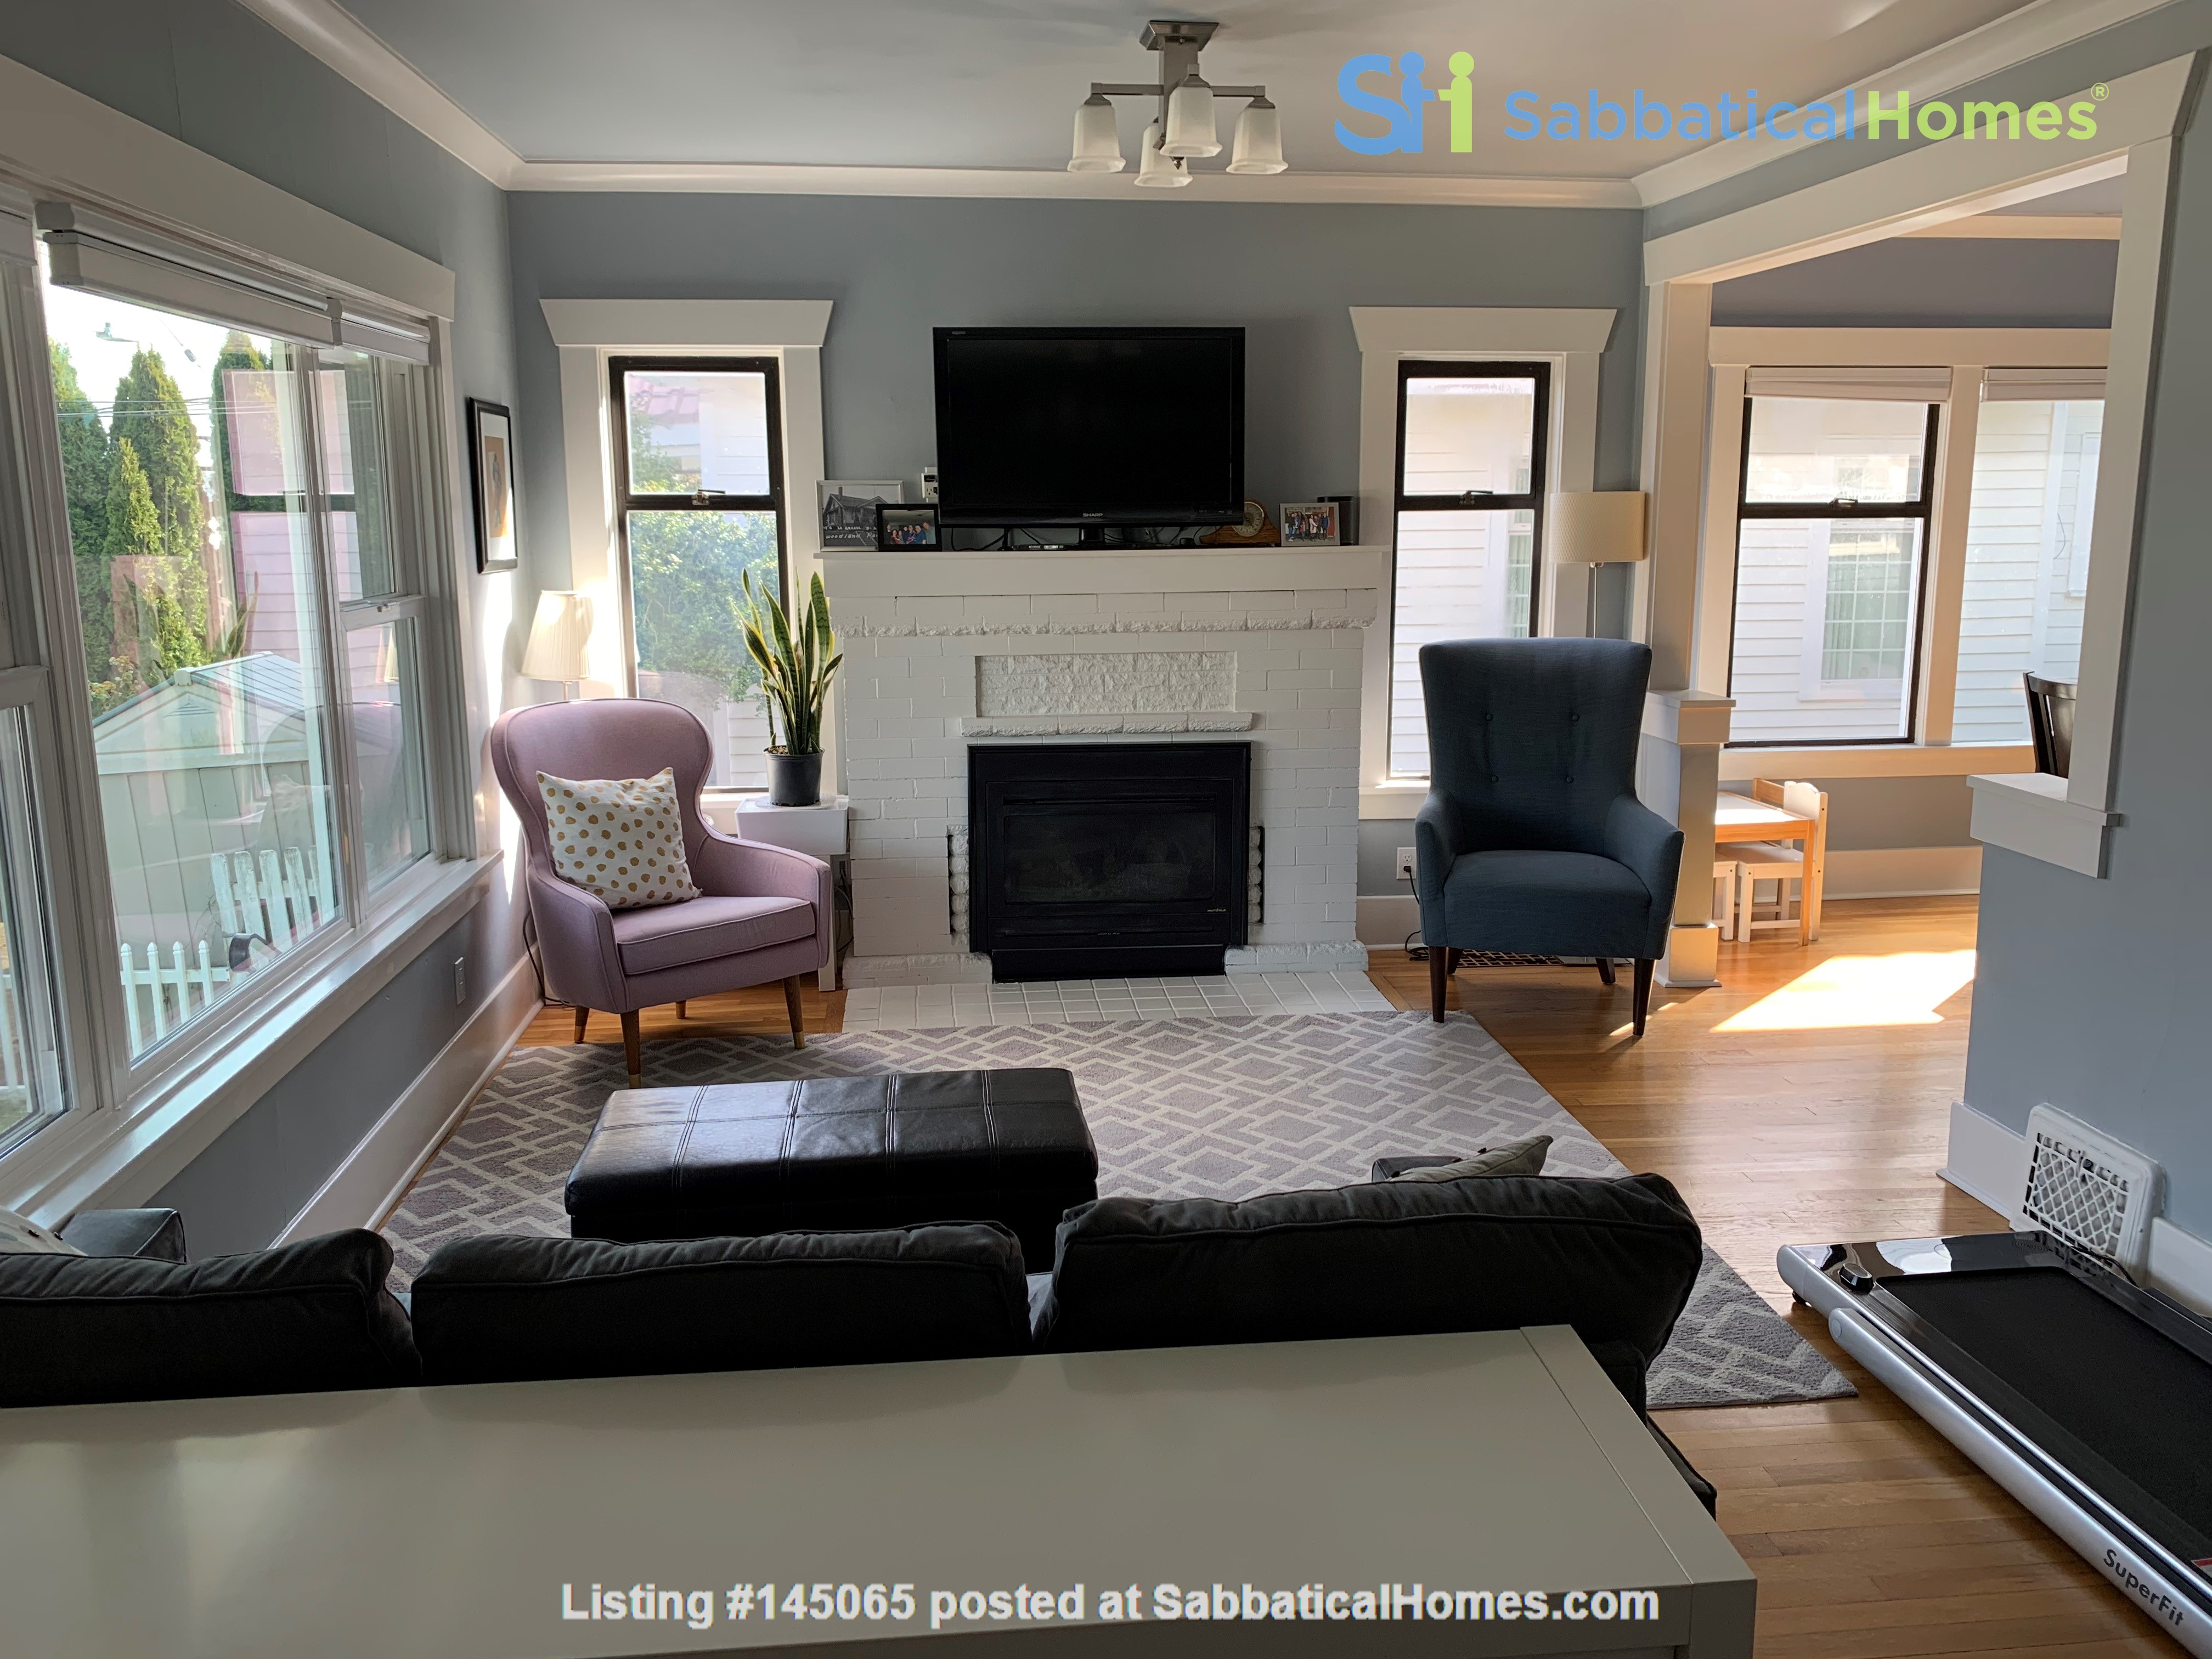 Light-filled and Completely Renovated Craftsman Home in Seattle Home Rental in Seattle, Washington, United States 1